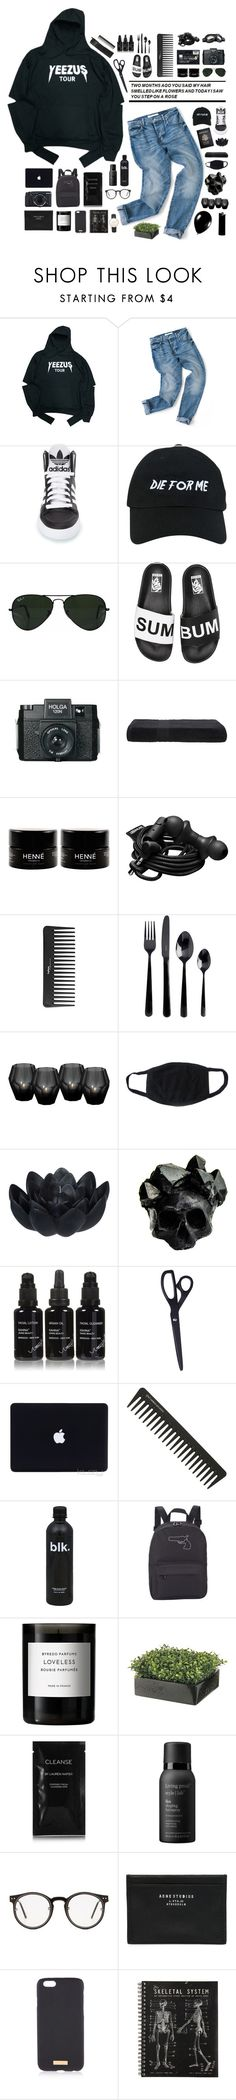 """""""elliot."""" by tzingfung ❤ liked on Polyvore featuring adidas, Nasaseasons, Ray-Ban, Vans, Holga, Passport, Urbanears, Sephora Collection, Viners and Eichholtz"""